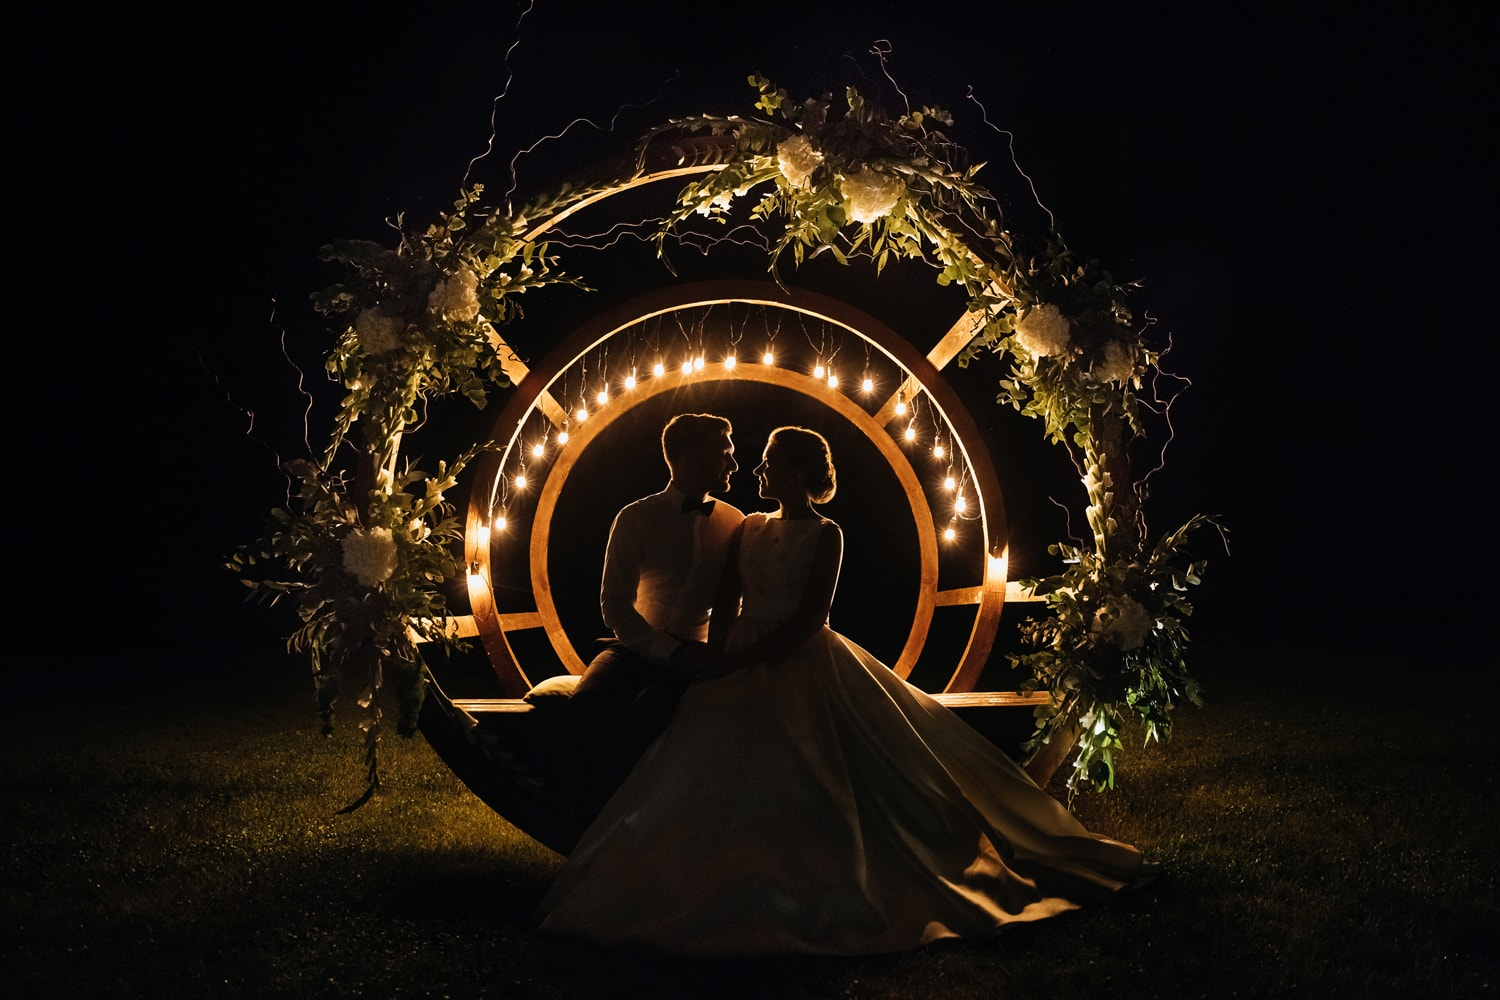 Silhouettes of bride and groom in the dark